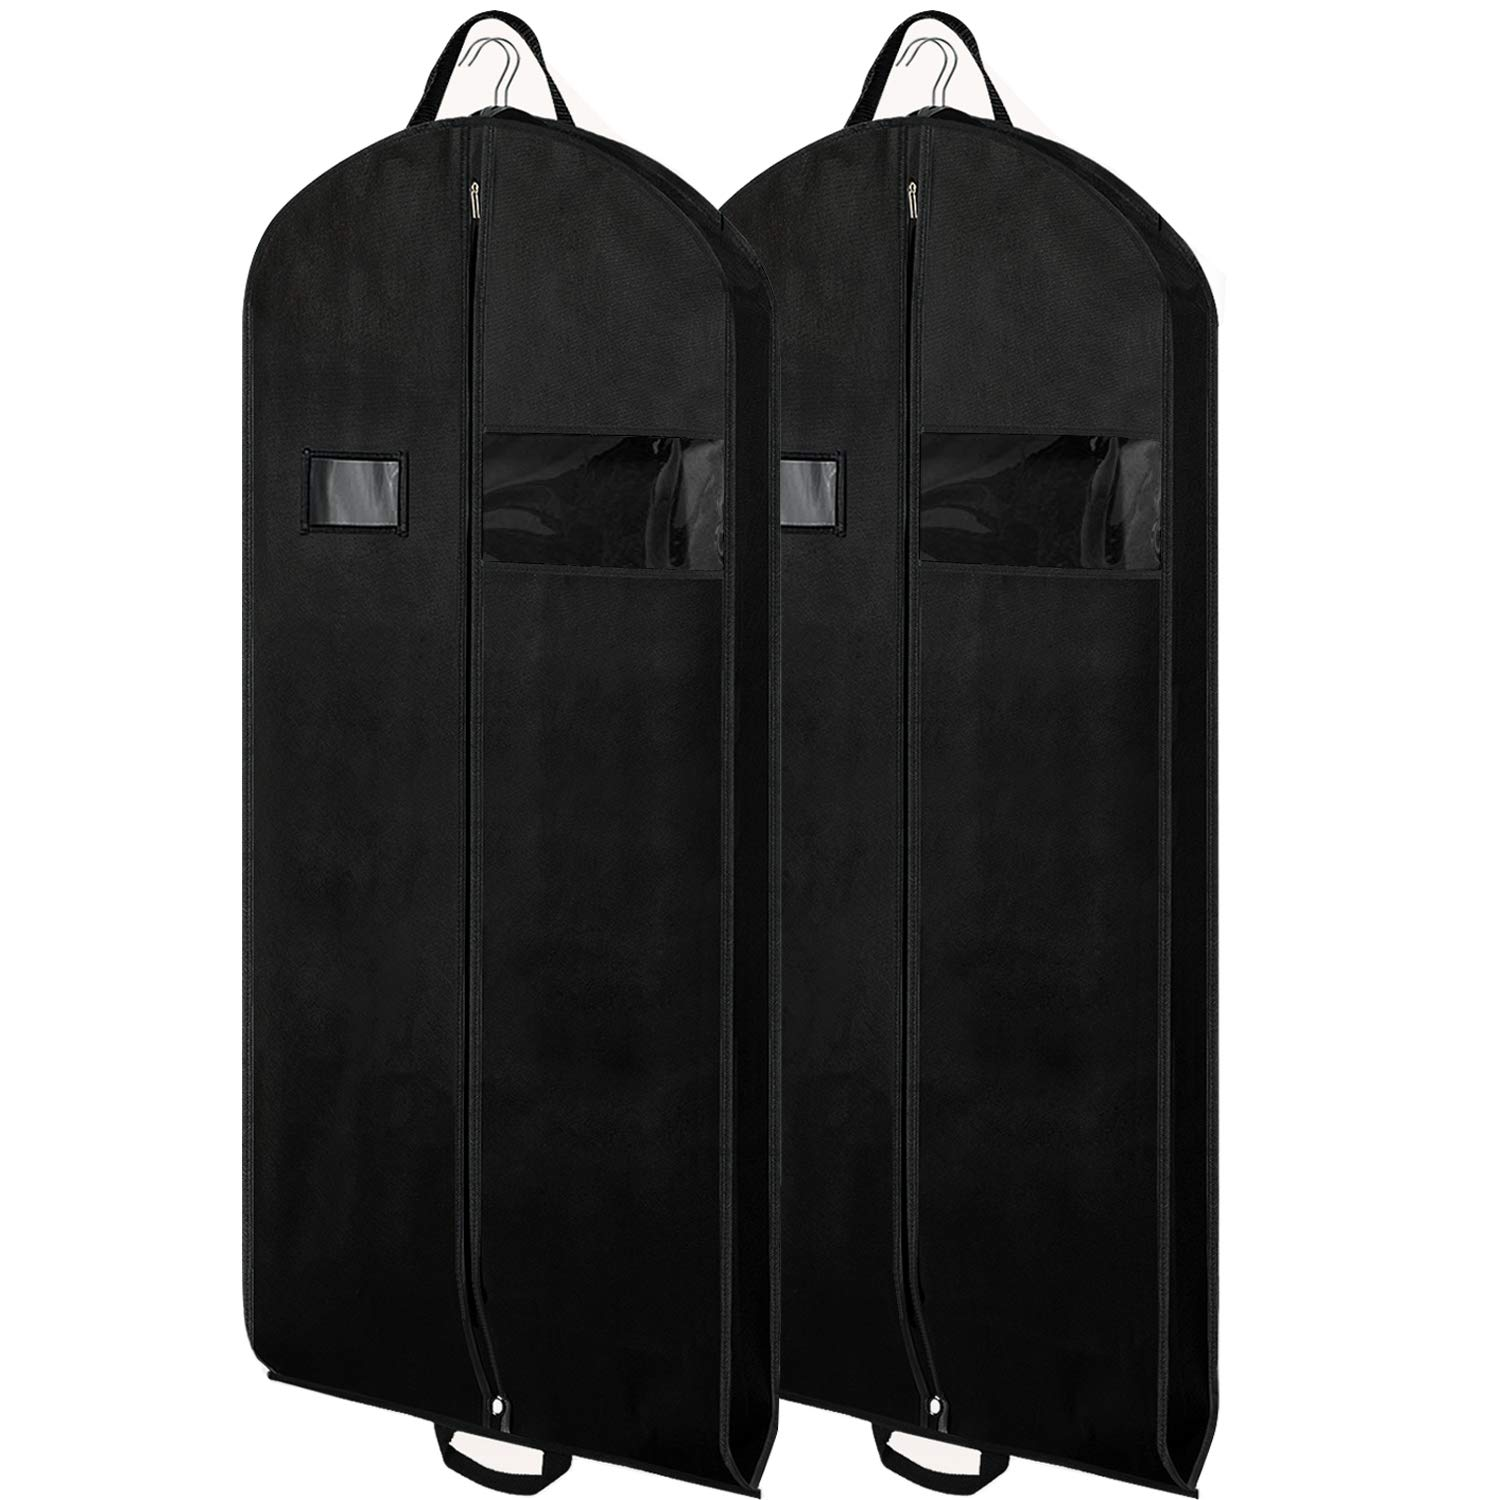 c27cd2585934 Zilink Black Garment Bags Suit Bags for Travel 54 inch Breathable Dresses  Cover Bag with Gusseted, Clear Window and ID Card Holder for Suit Coat ...